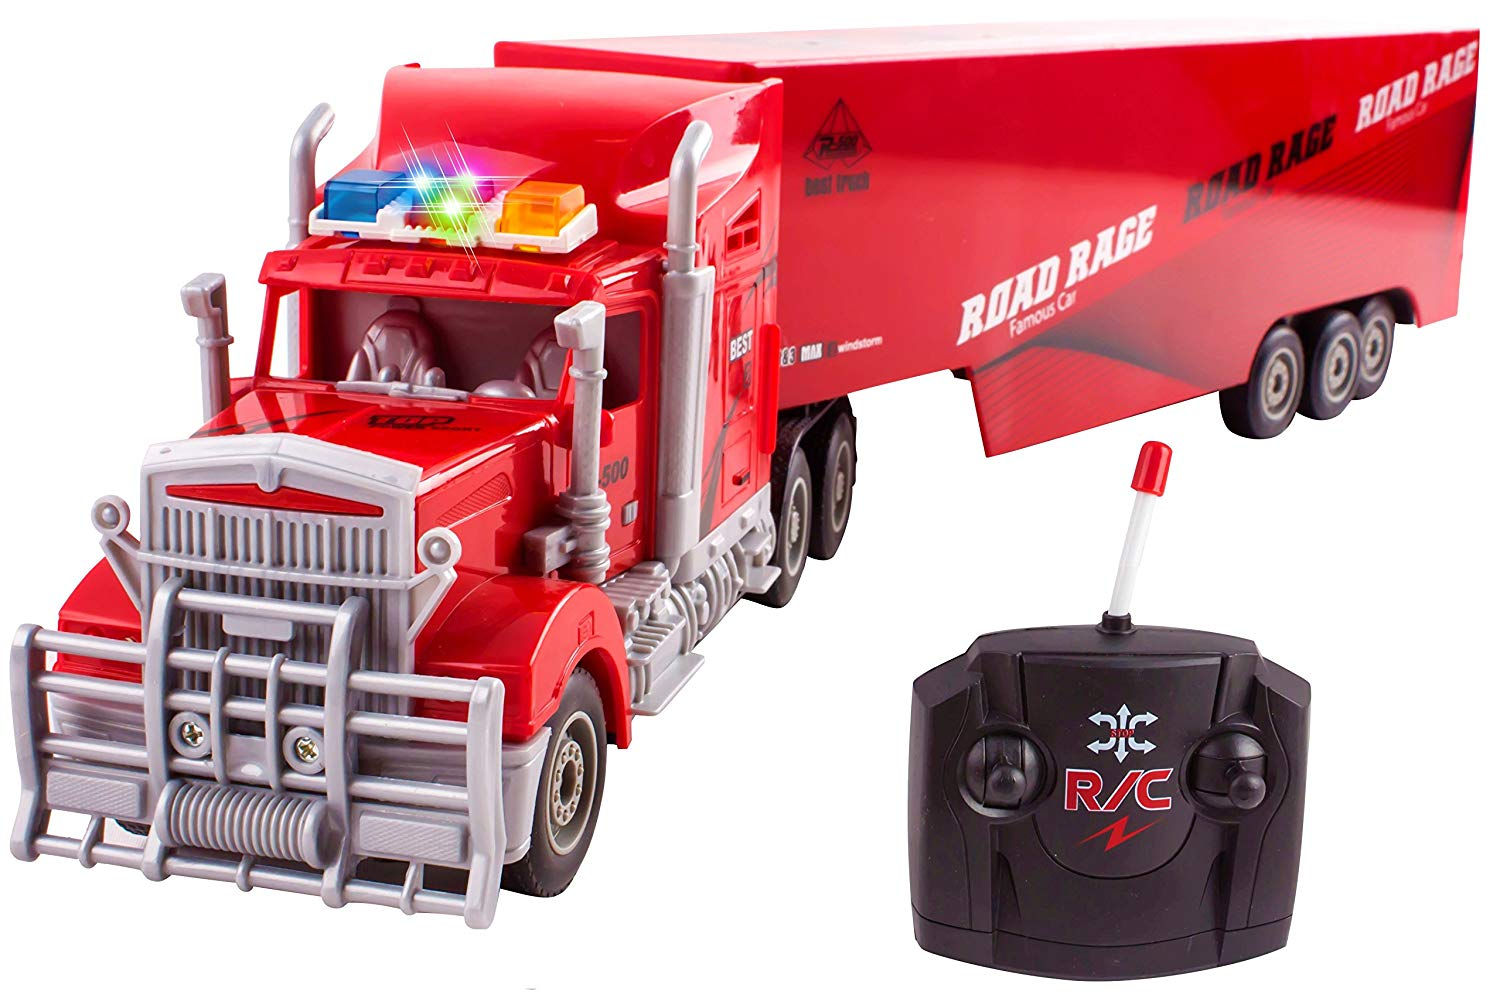 Toy Semi Truck Trailer 23 Electric Hauler Remote Control